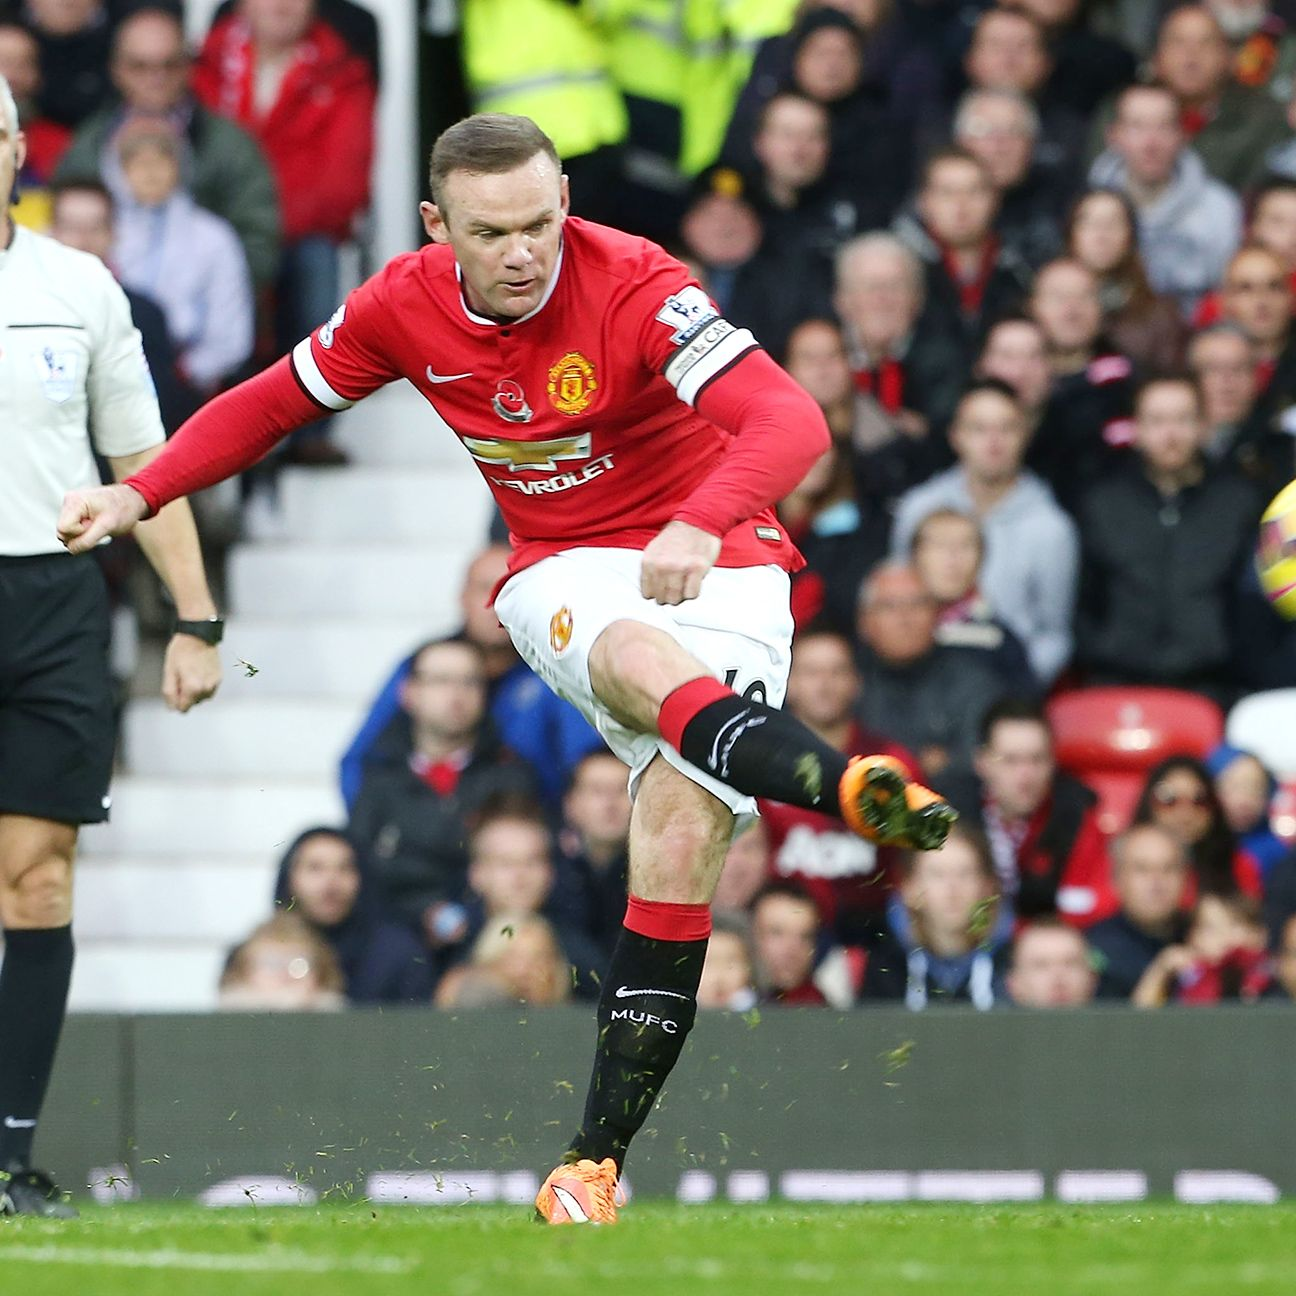 Wayne Rooney has been deployed at various positions during his Manchester United career, and with differing results.